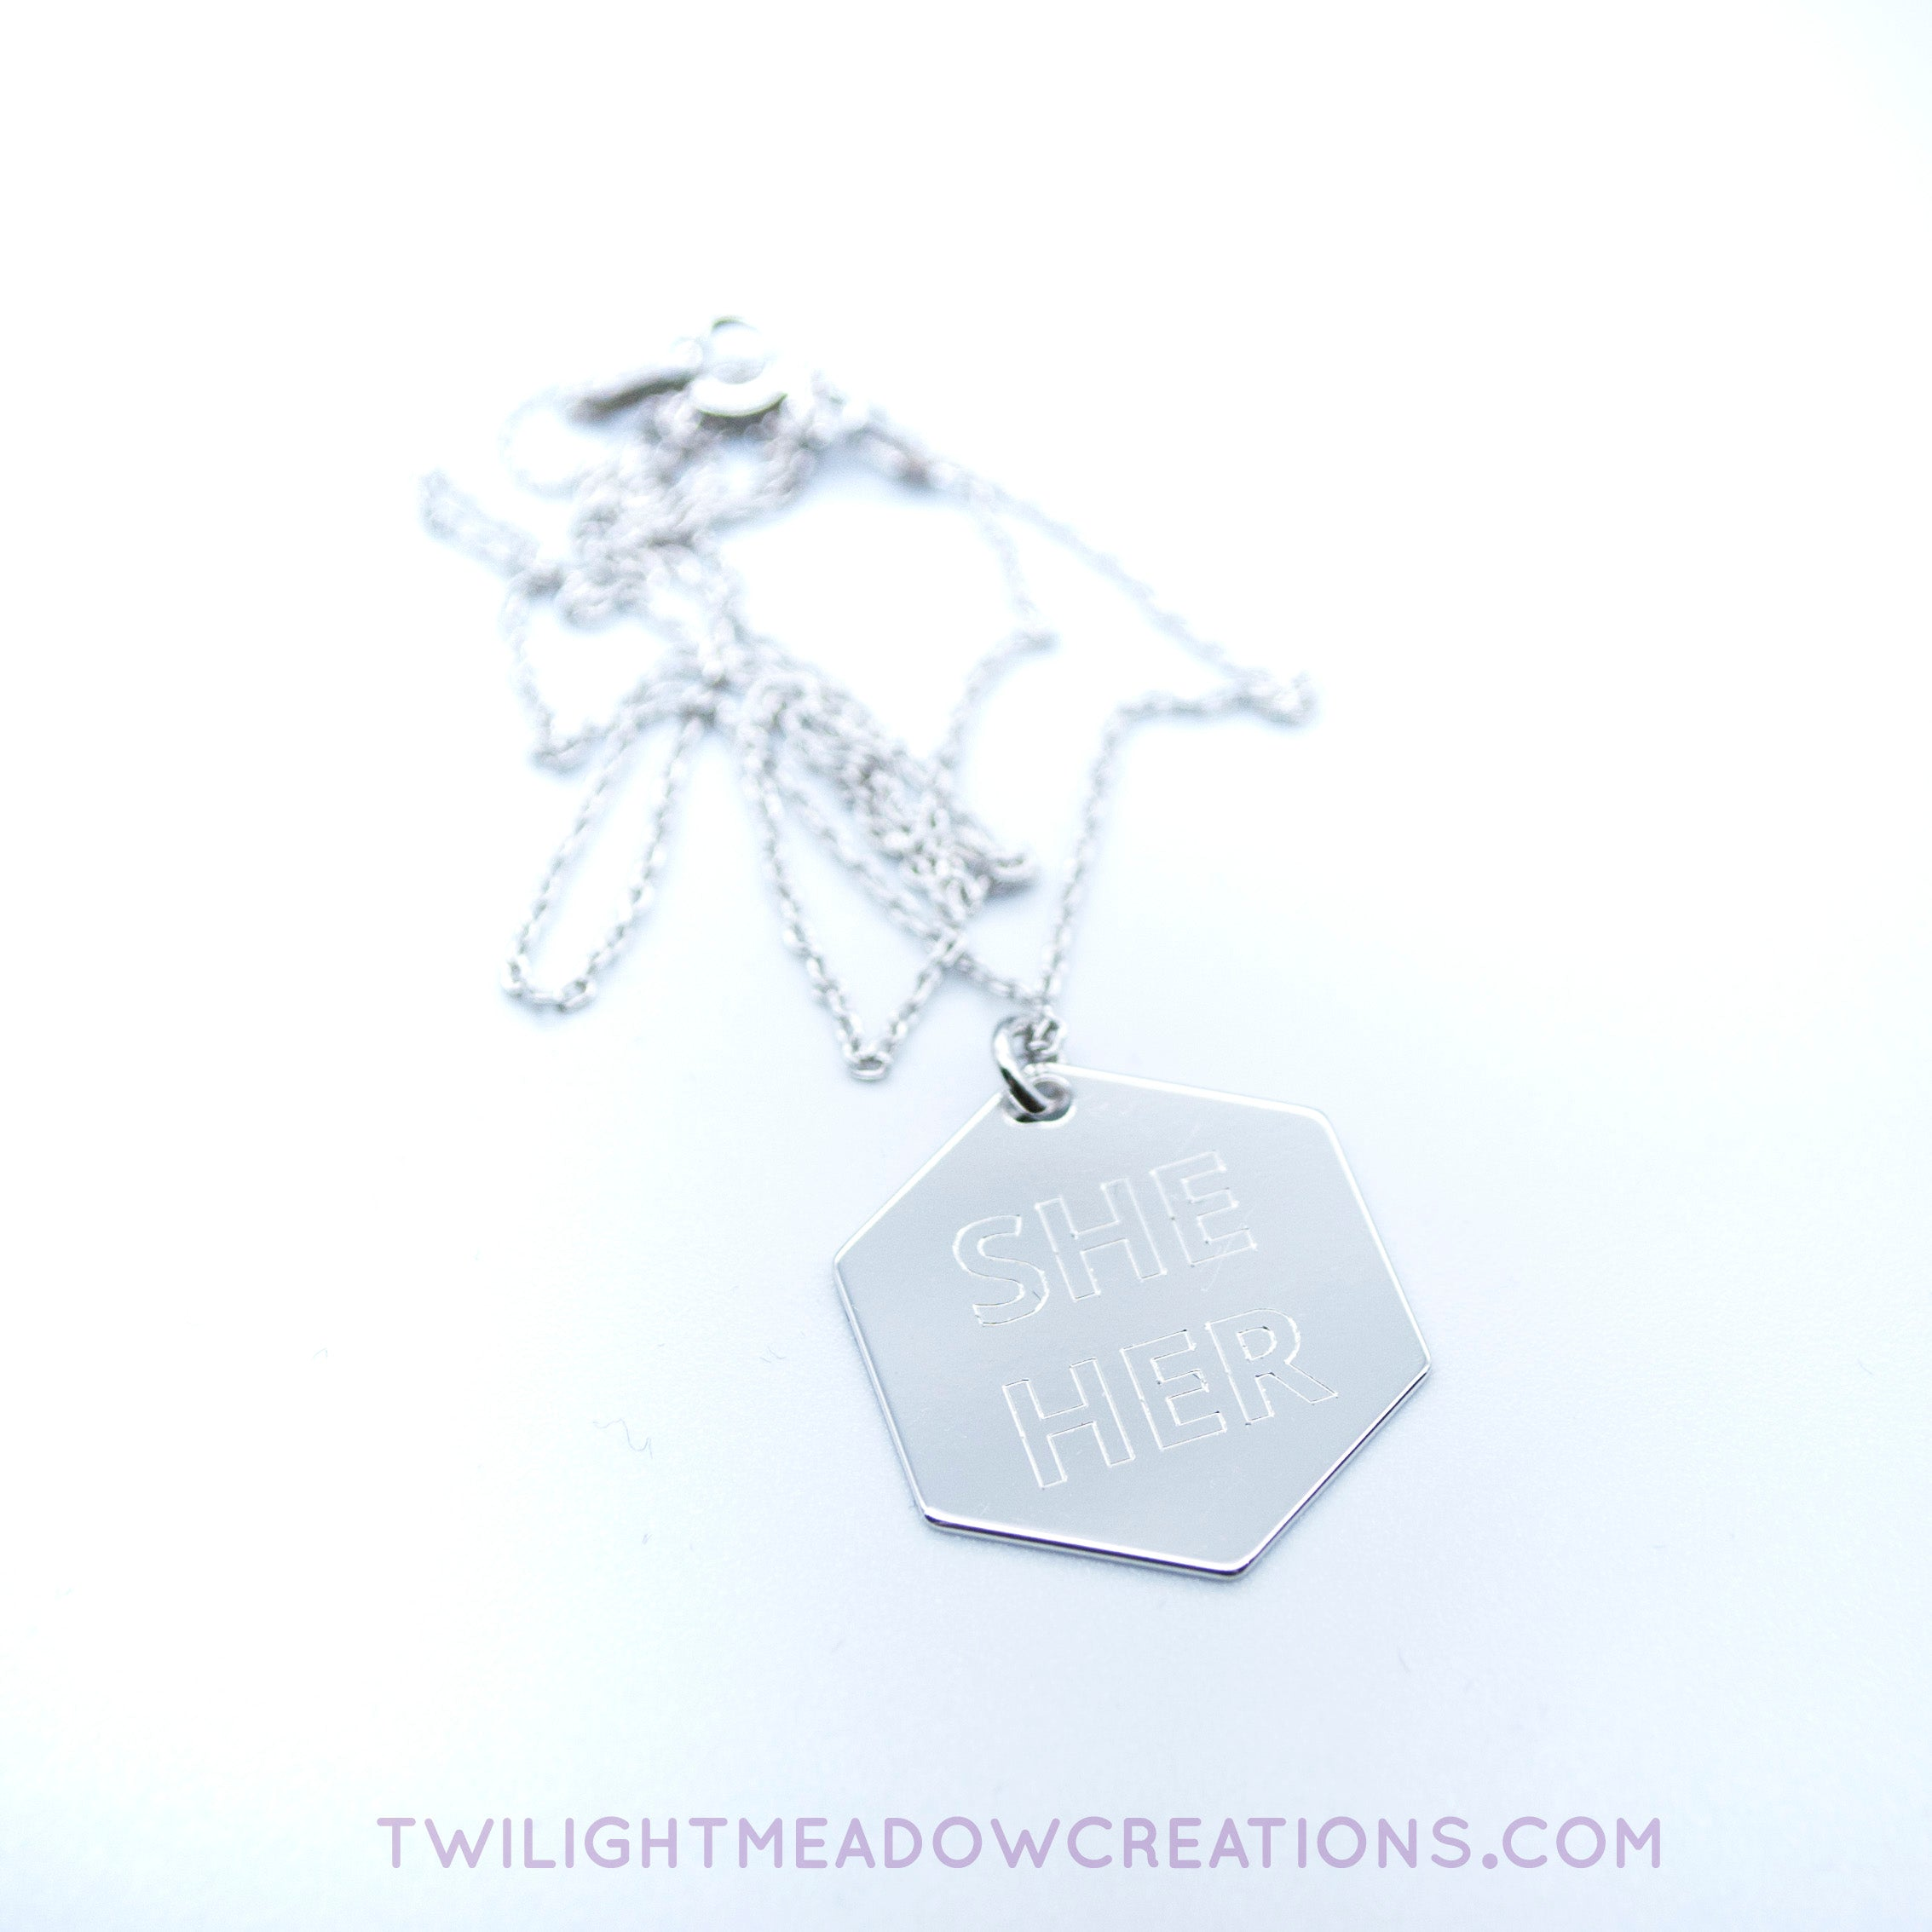 She/Her Pronoun Necklace - Twilight Meadow Creations